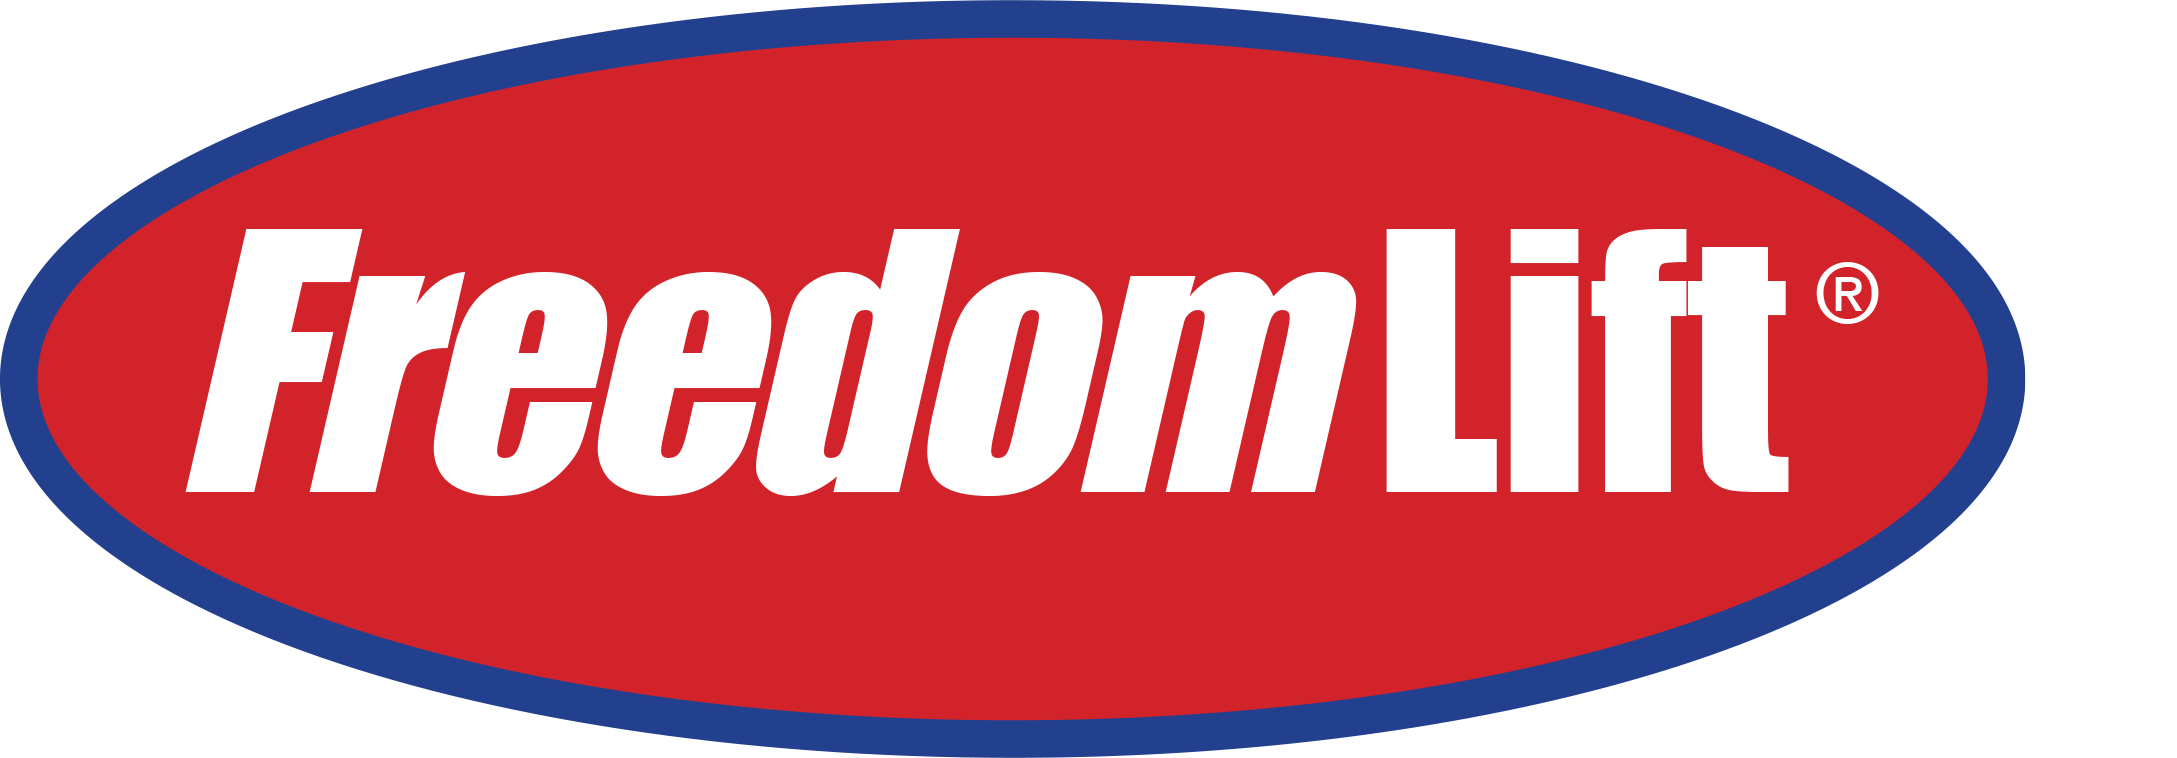 FreedomLift Logo.png